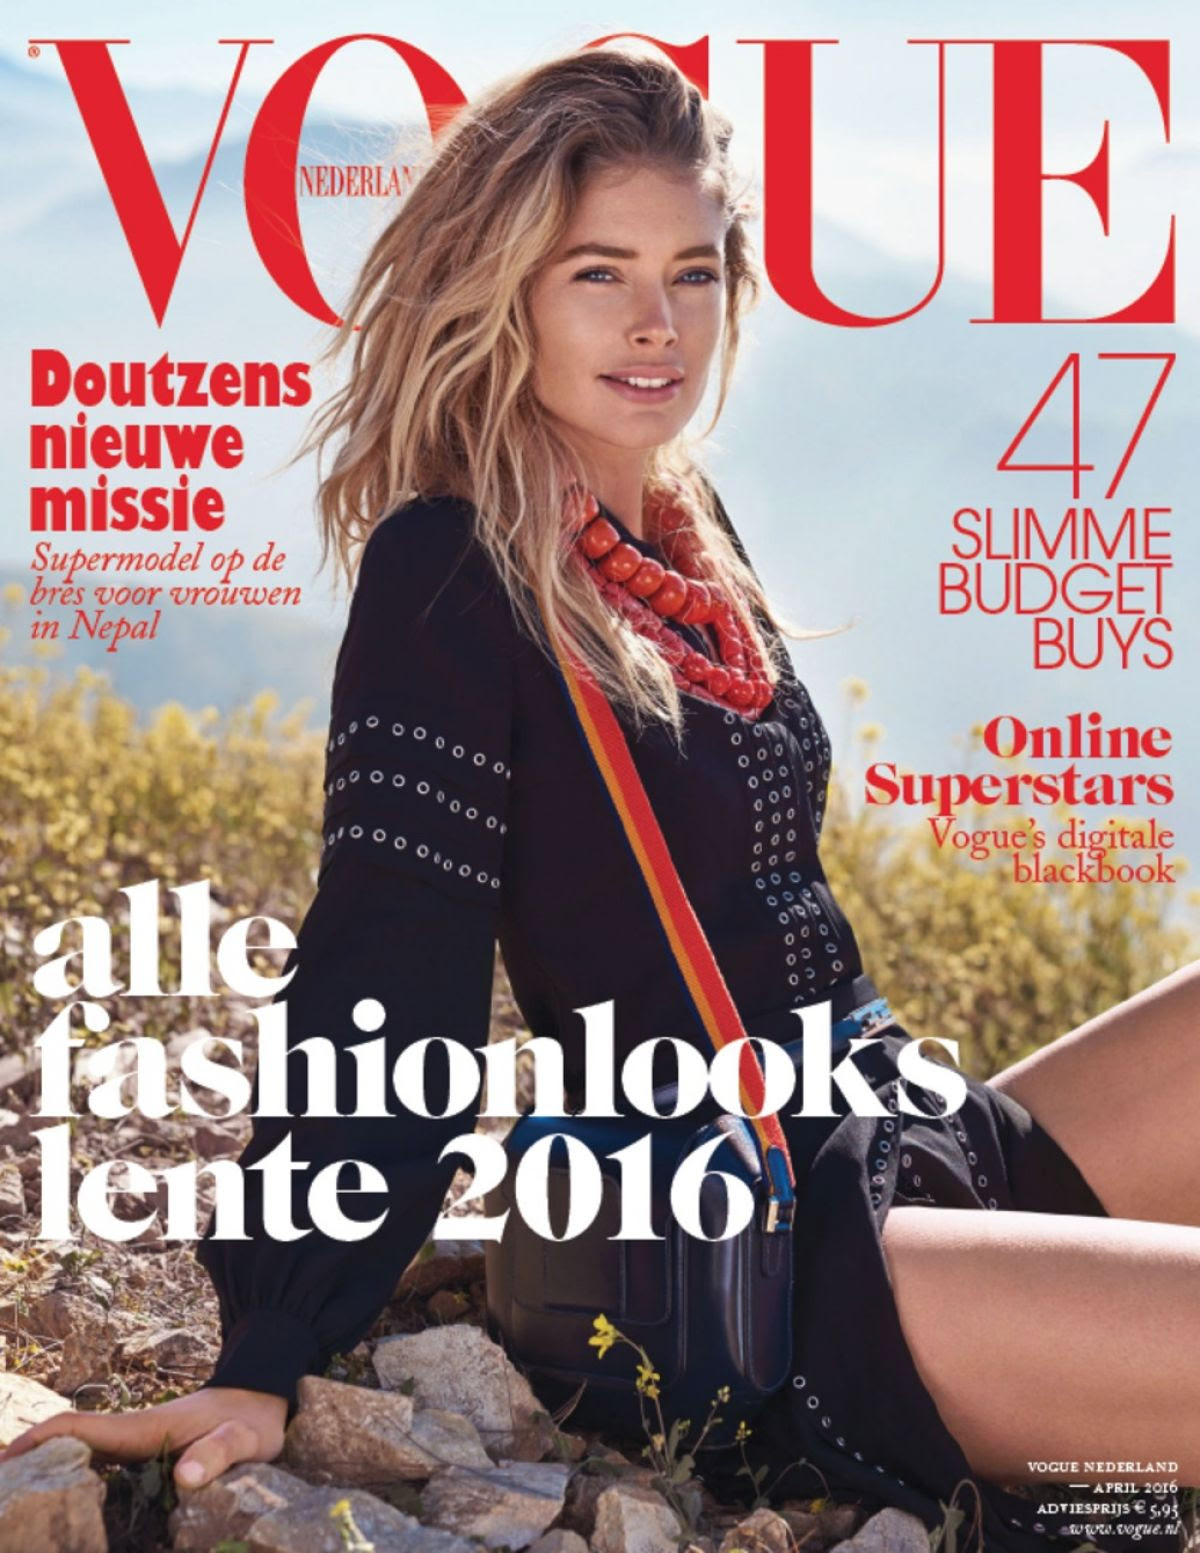 DOUTZEN KROES on the Cover ov Vogue Magazine, Netherlands April 2016 Issue